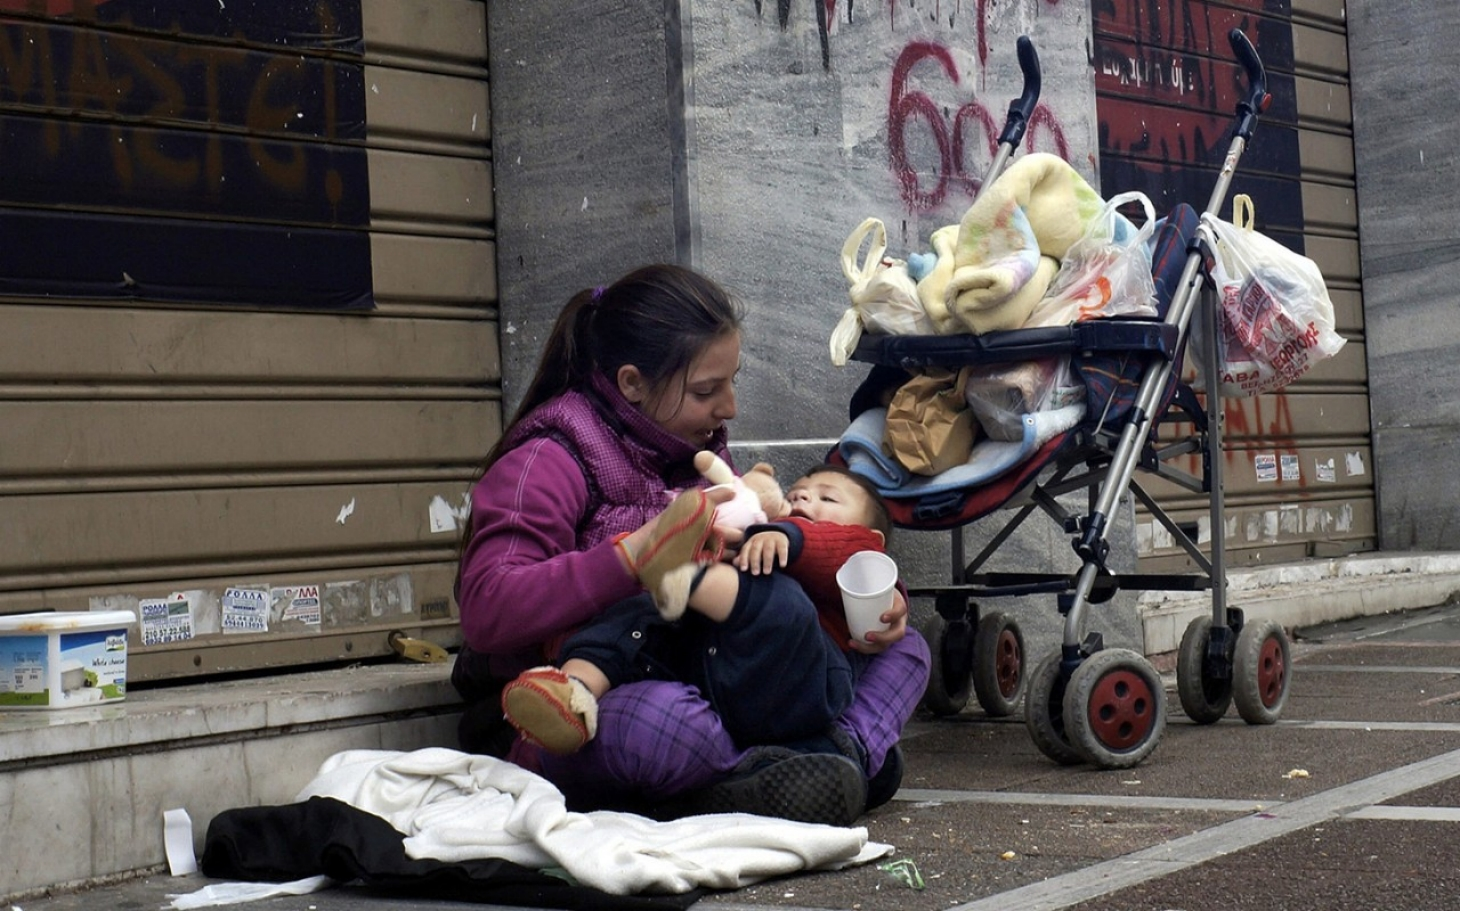 a paper on poverty and young adults in the united states Causes of poverty in the united states the united states defines poverty for a family of four as being less than $16,036 per year, or $4,009 per person (leone 12) people find themselves under this line for an innumerable amount of reasons.